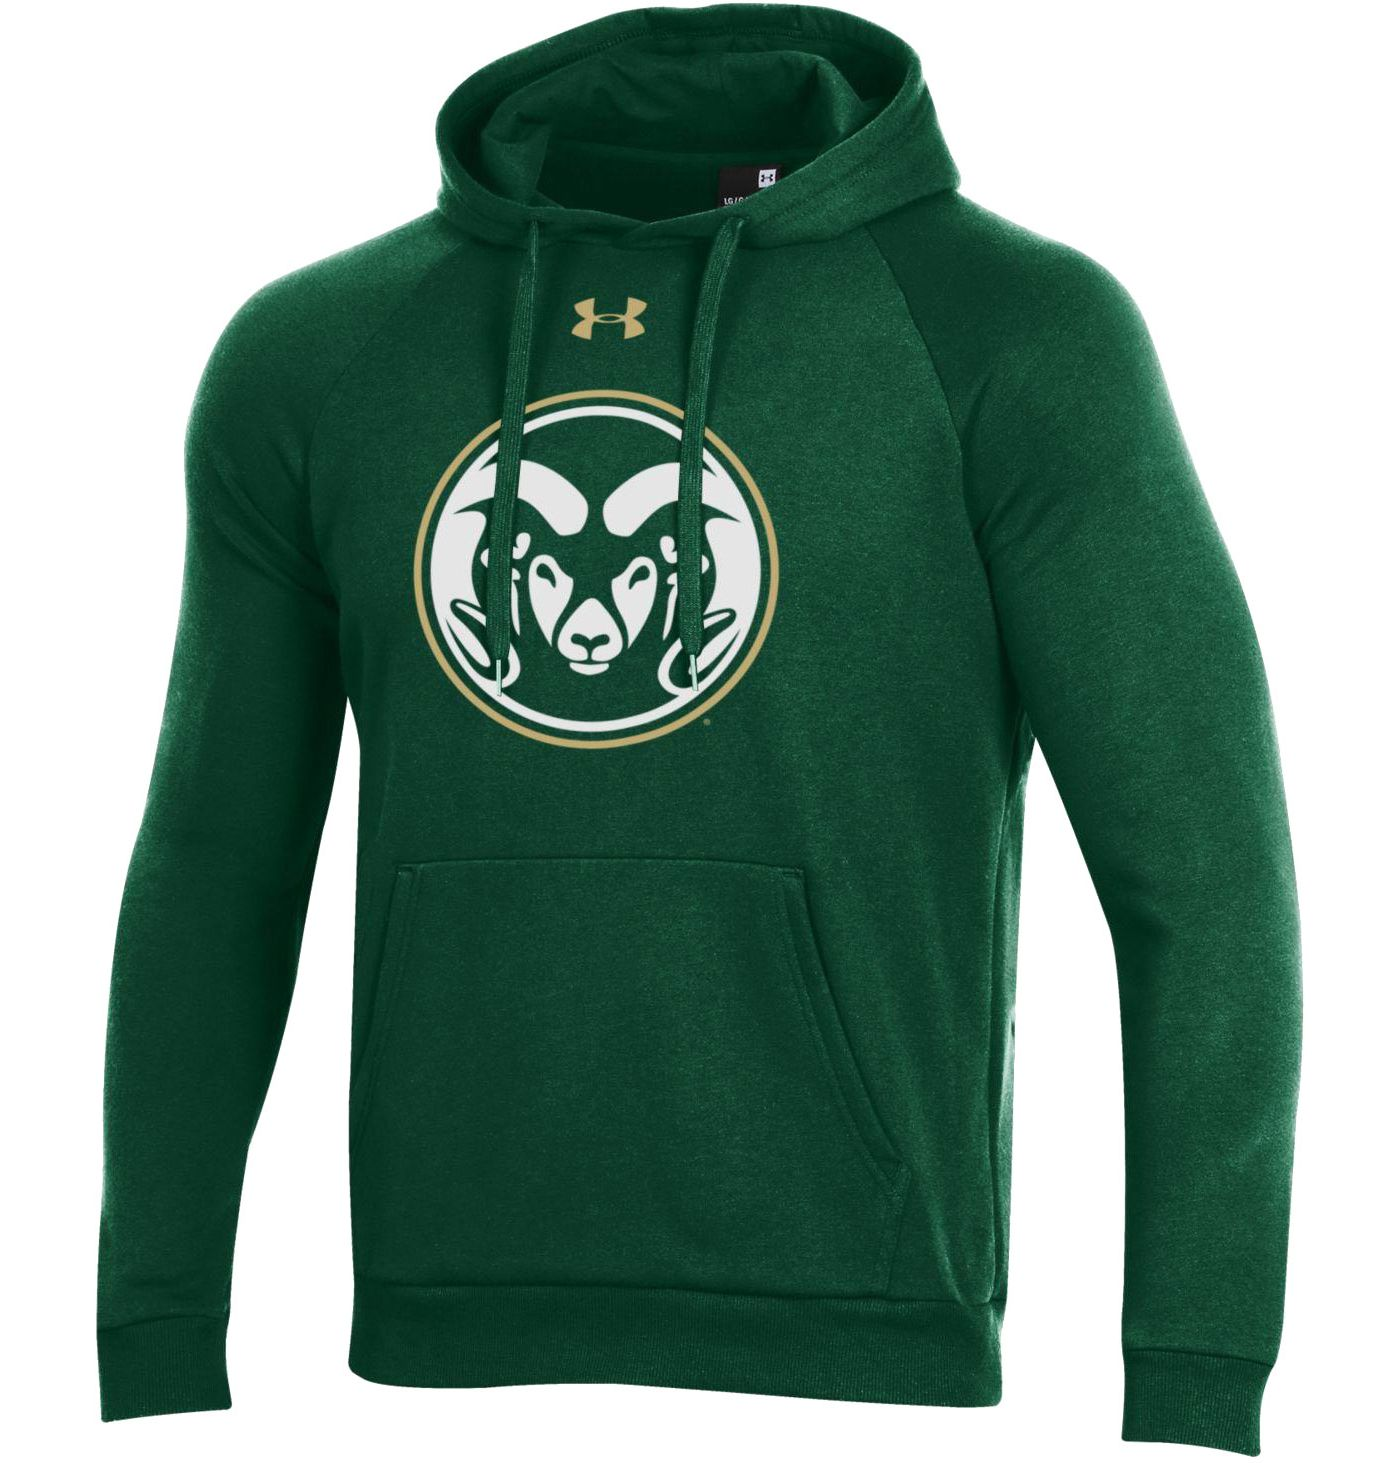 Under Armour Men's Colorado State Rams Green All Day Hoodie